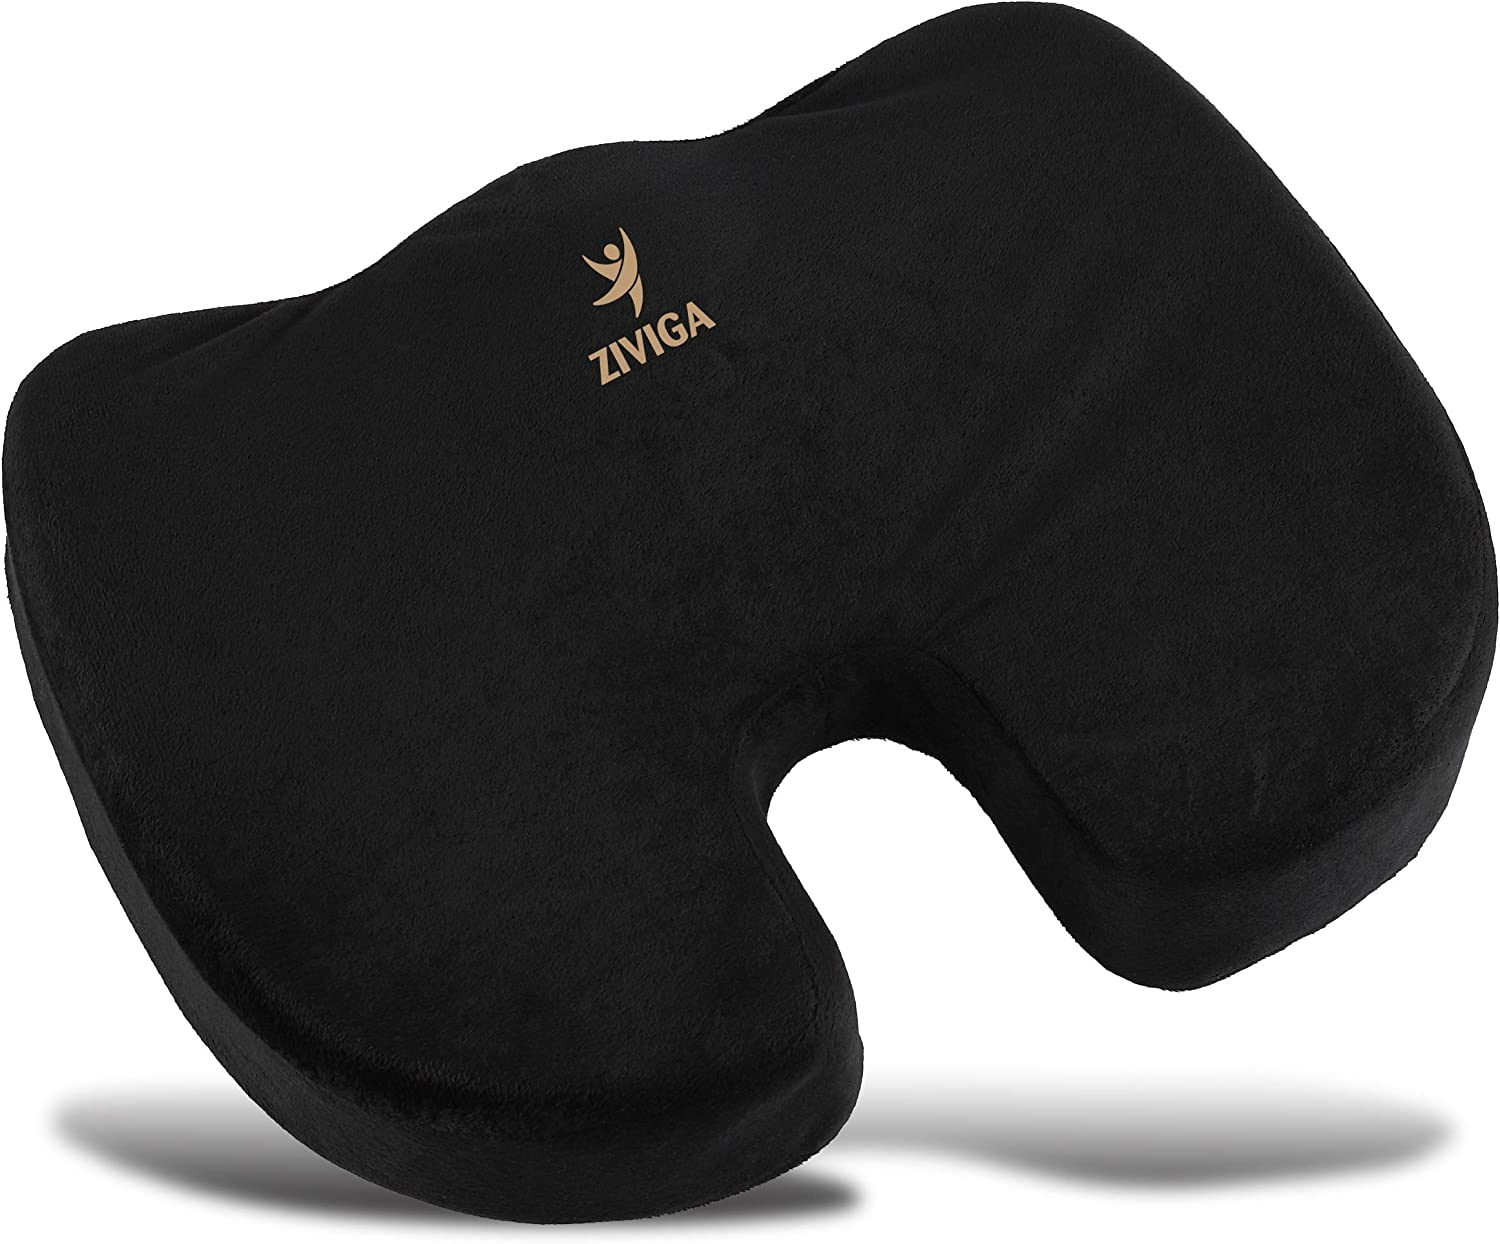 Seat Cushion for Office Chair - Kitchen, Truck Driver, Car, Bleachers, Wheelchair - Soothing Coccyx Support Relieves Back Pain, Tailbone, Sciatica, Hemorrhoid